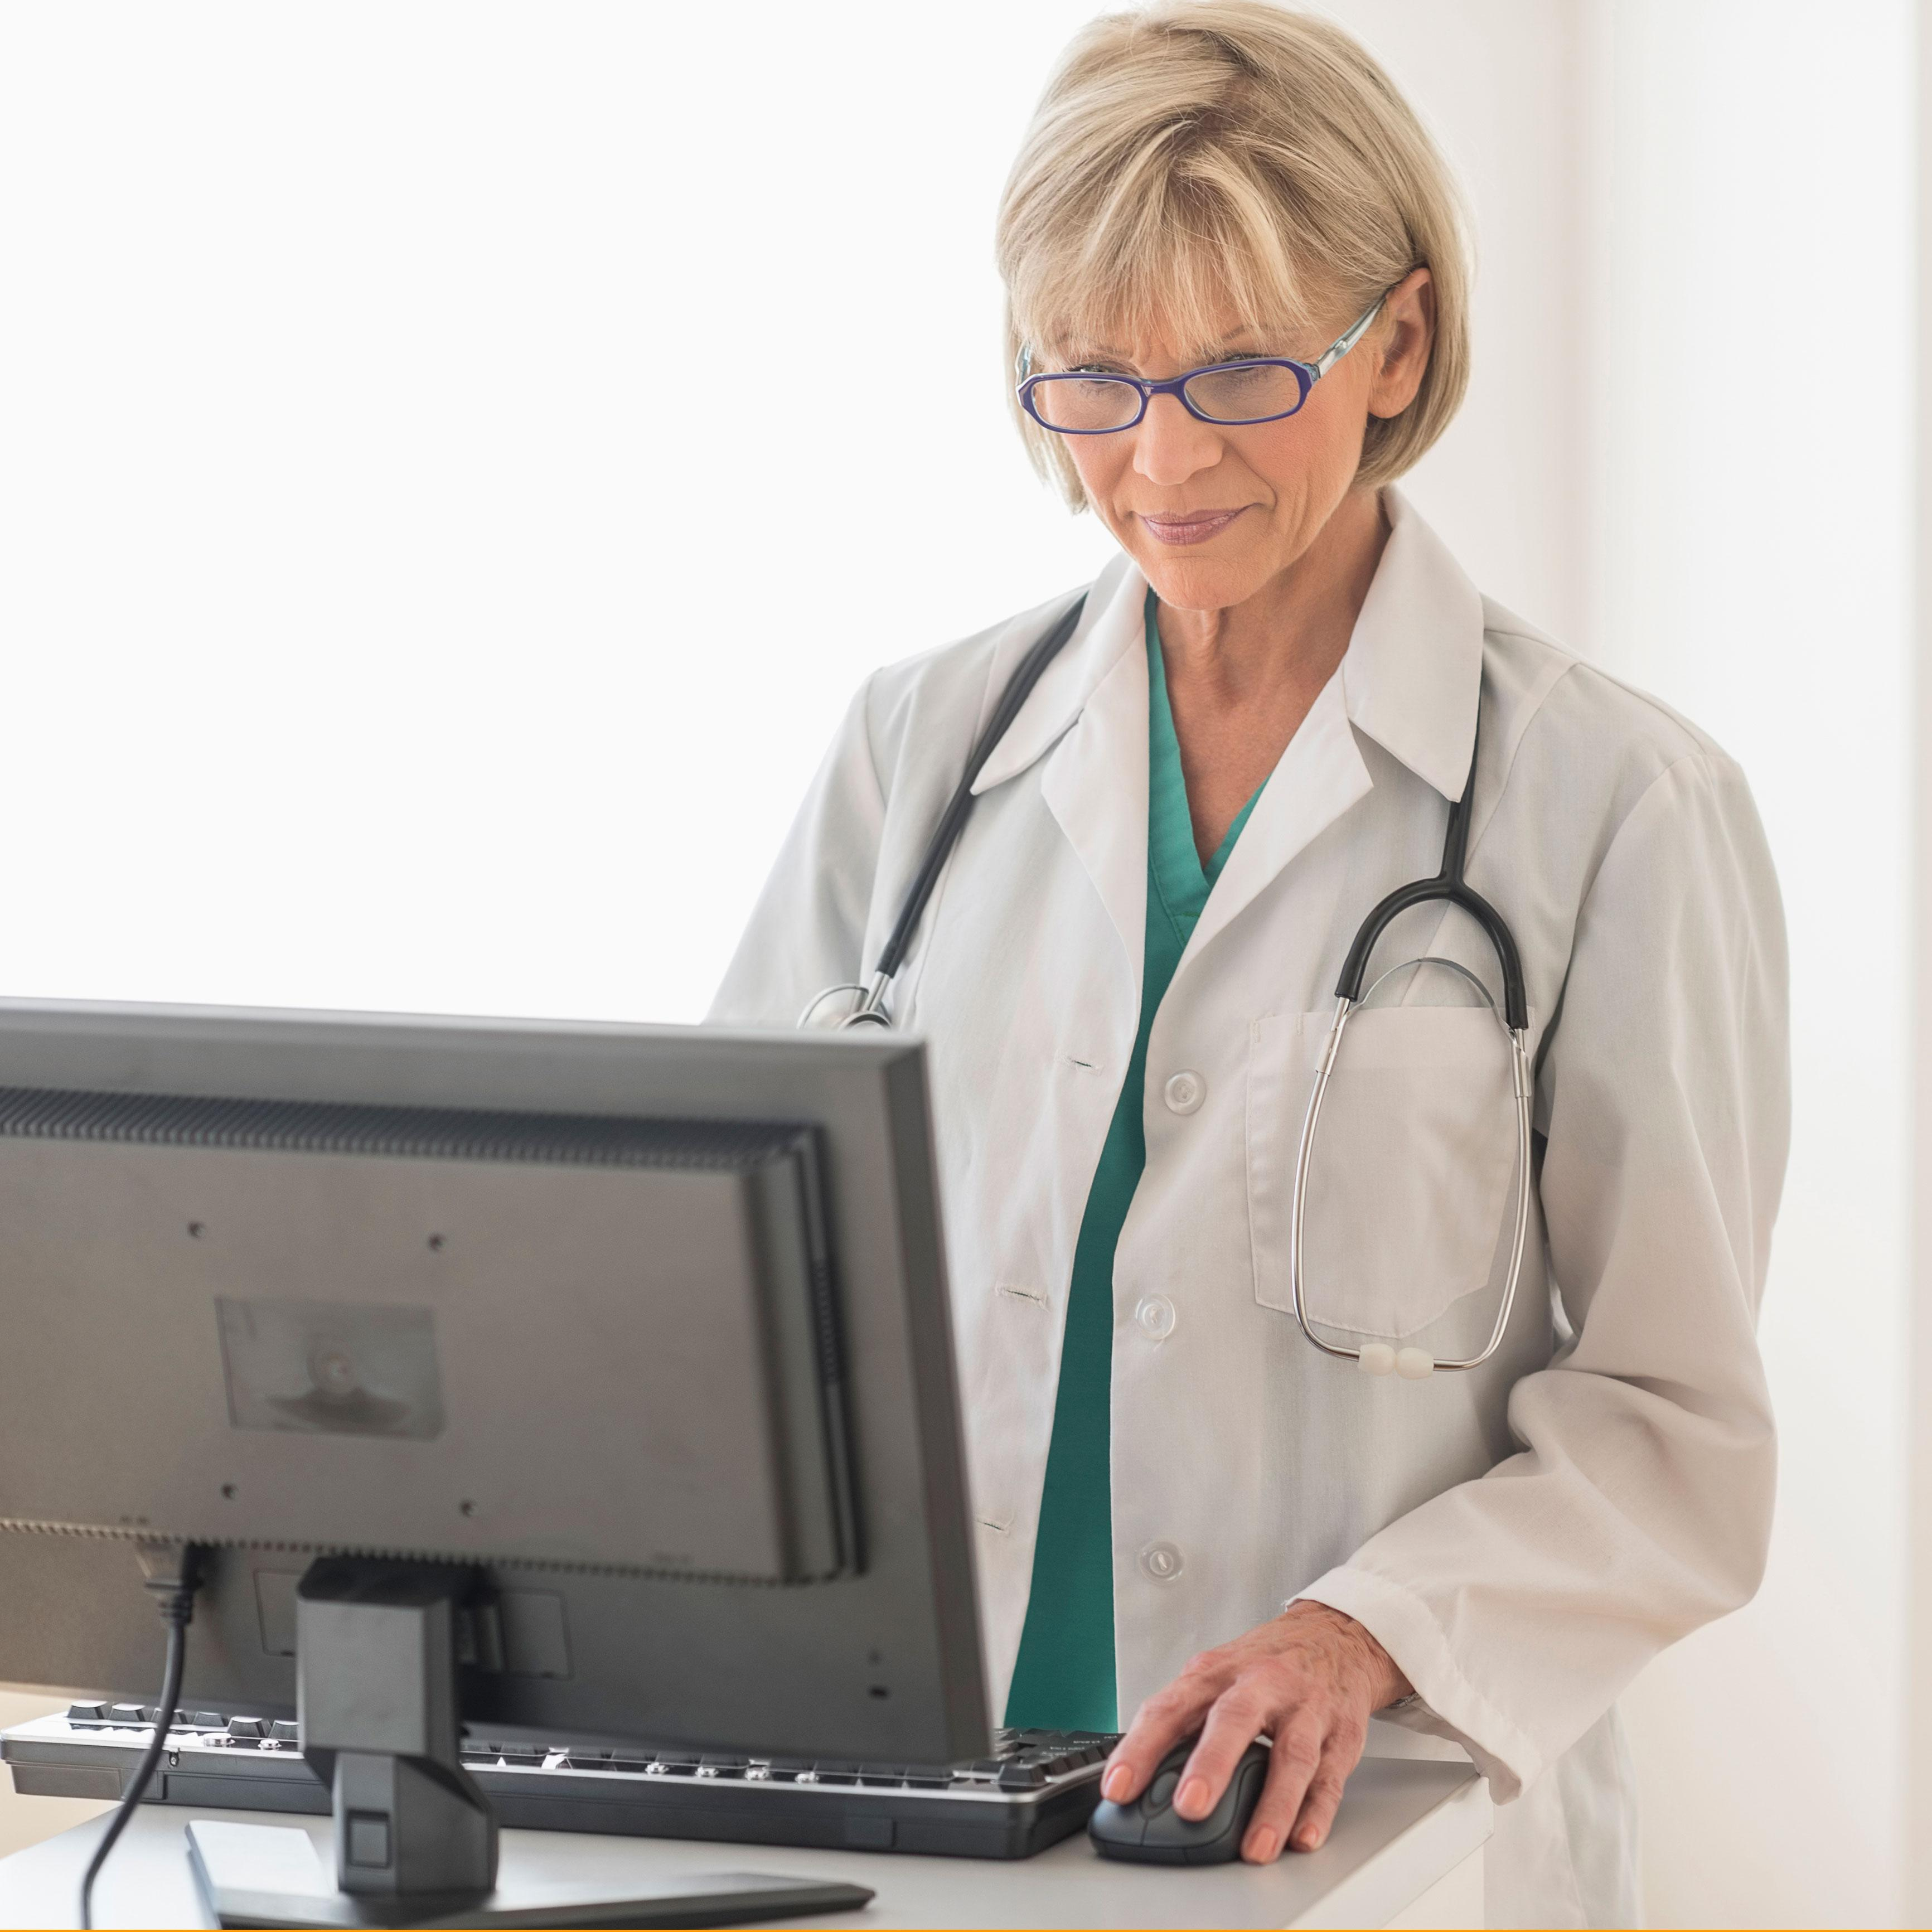 Image of a female clinician using a computer in a clinic